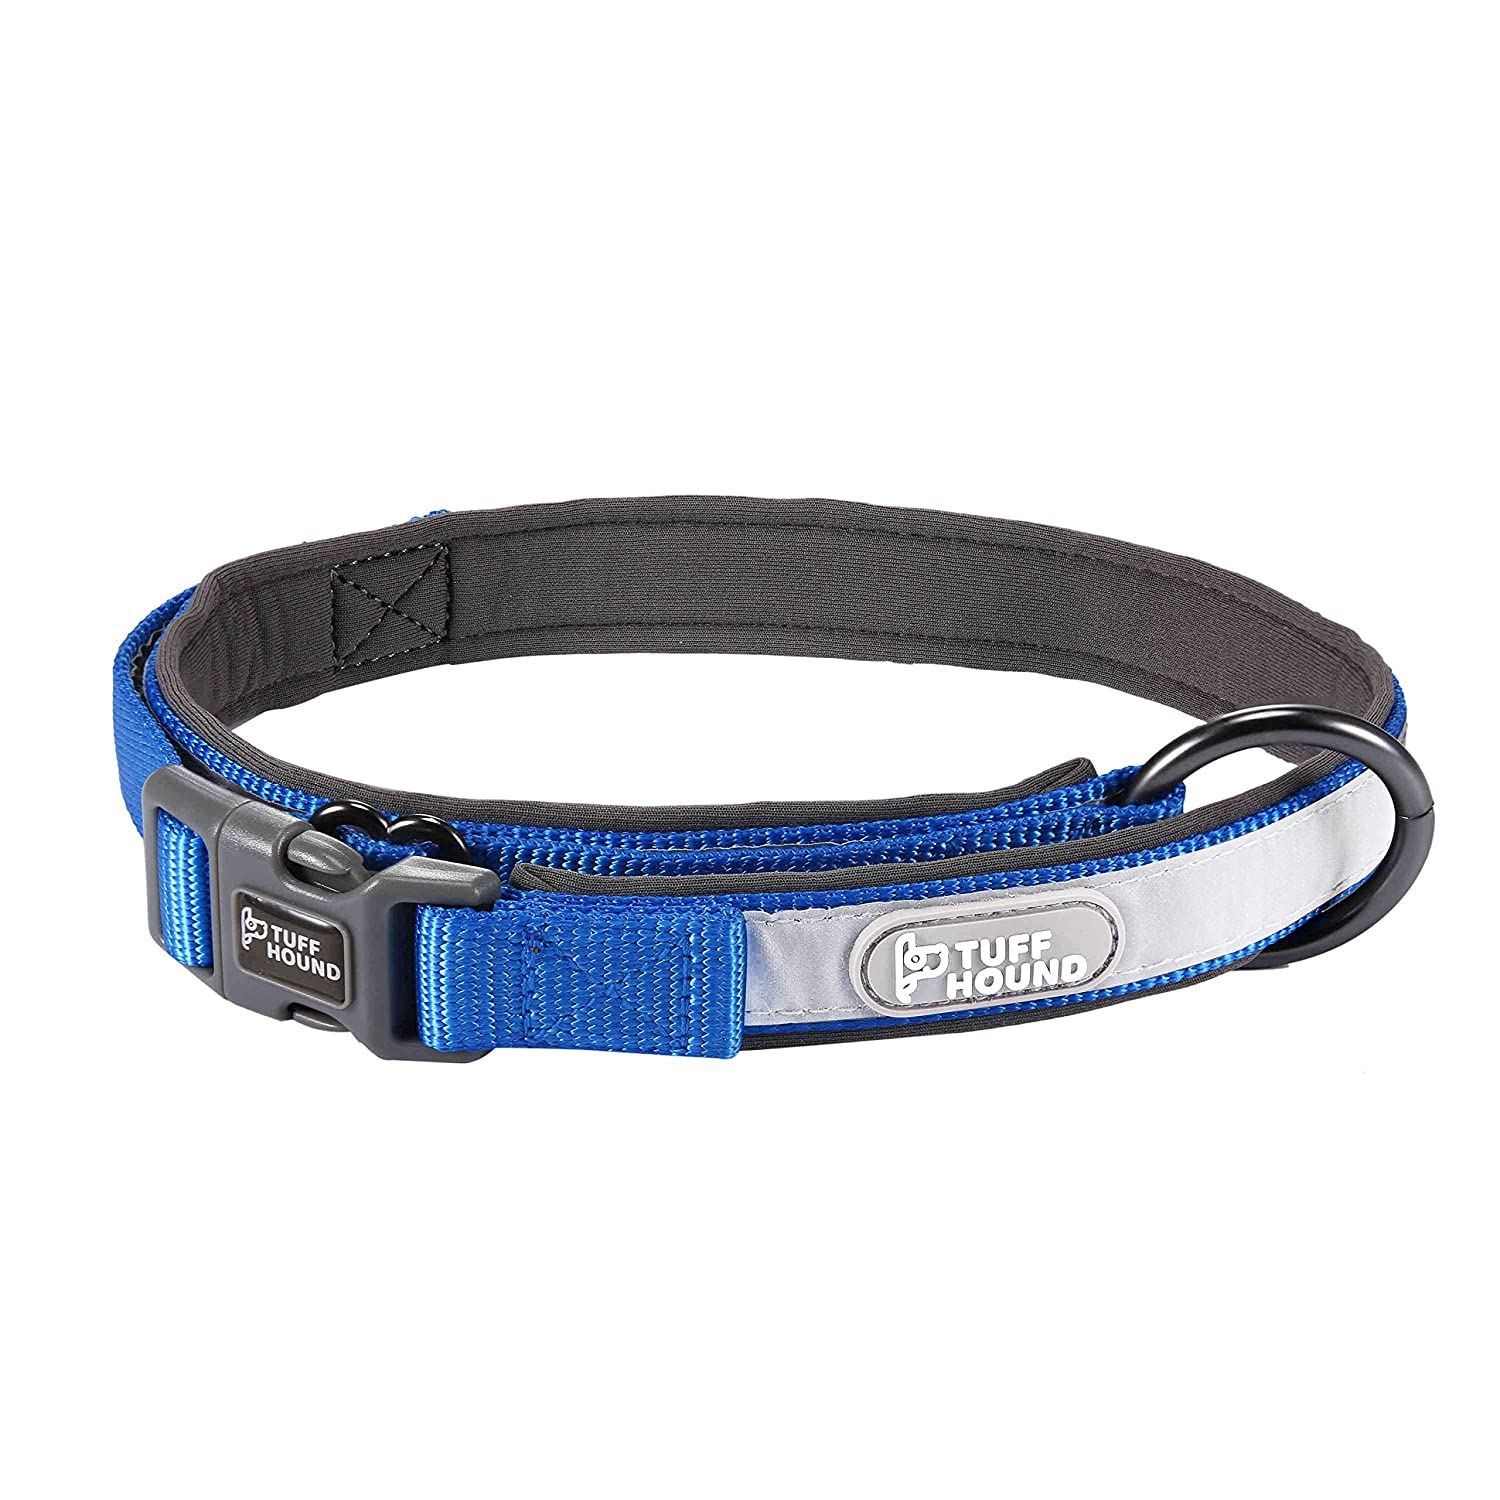 bluee XS bluee XS Warmcasa 3 colors Adjustable Nylon Pet Collar for Puppy Small Medium Large Dogs (XS, bluee)